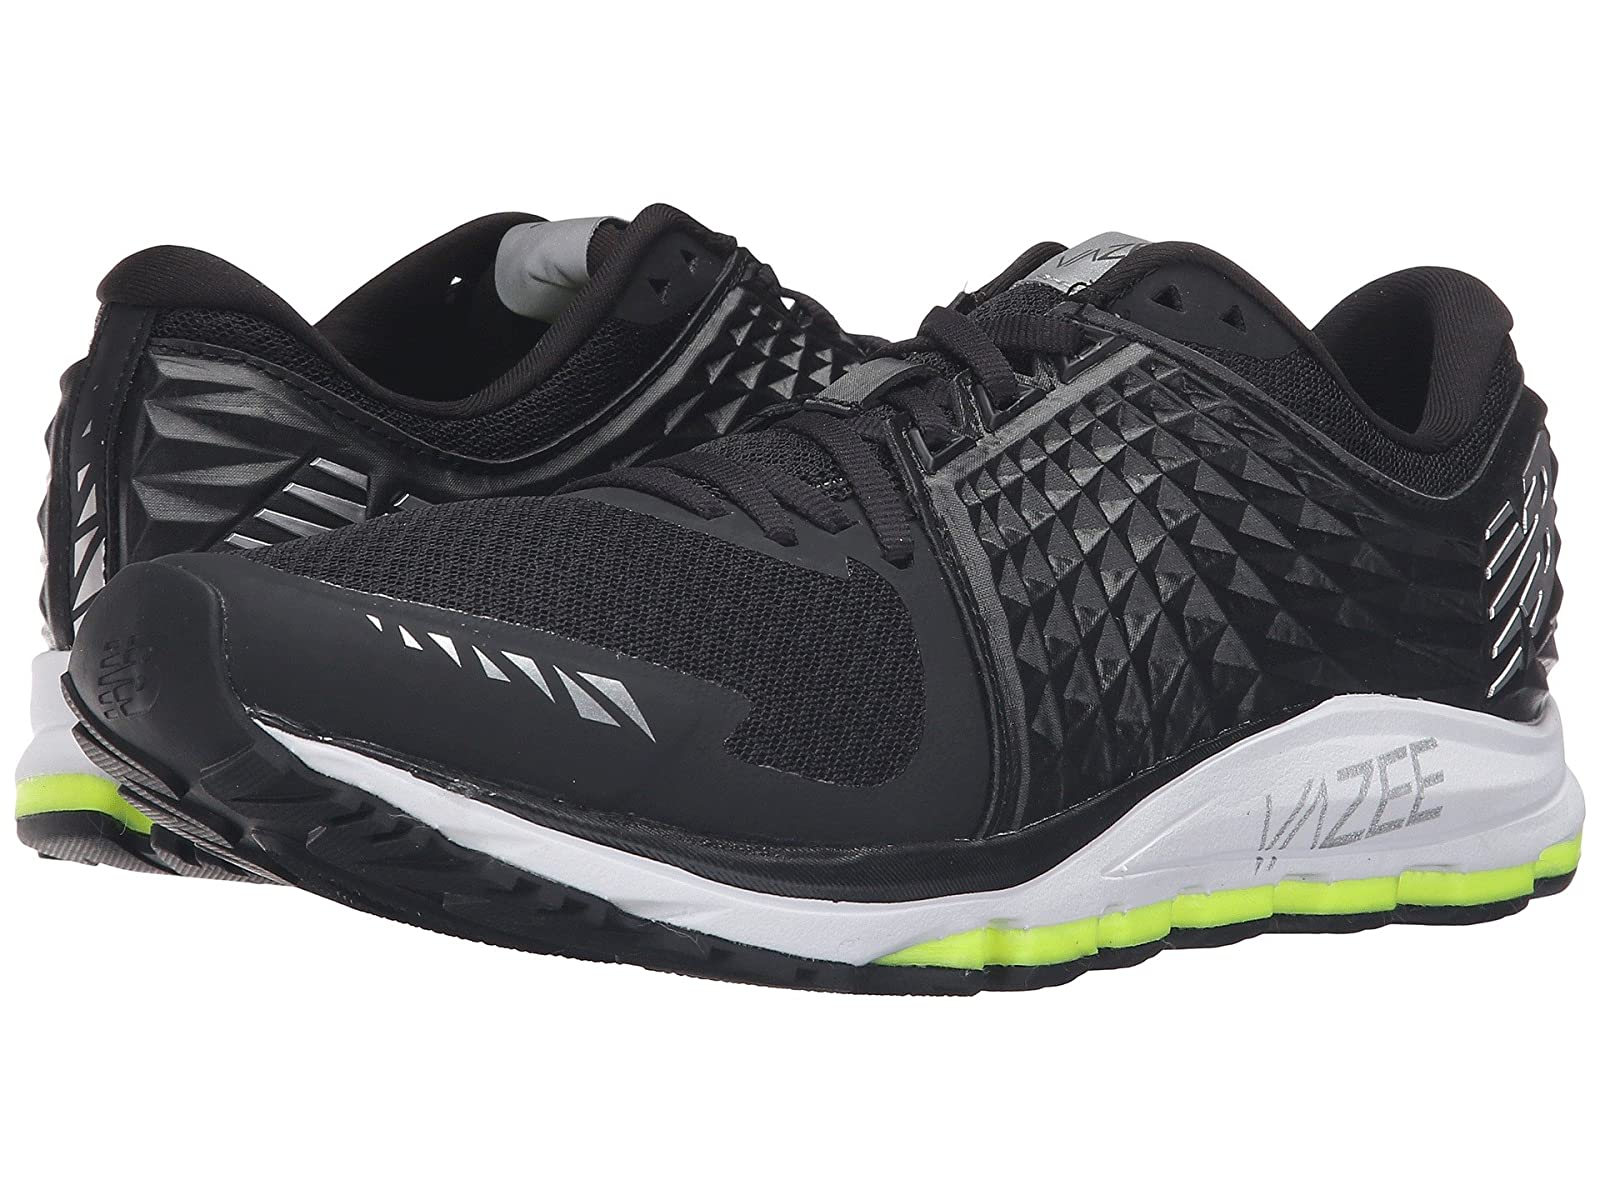 New Balance Vazee 2090Cheap and distinctive eye-catching shoes